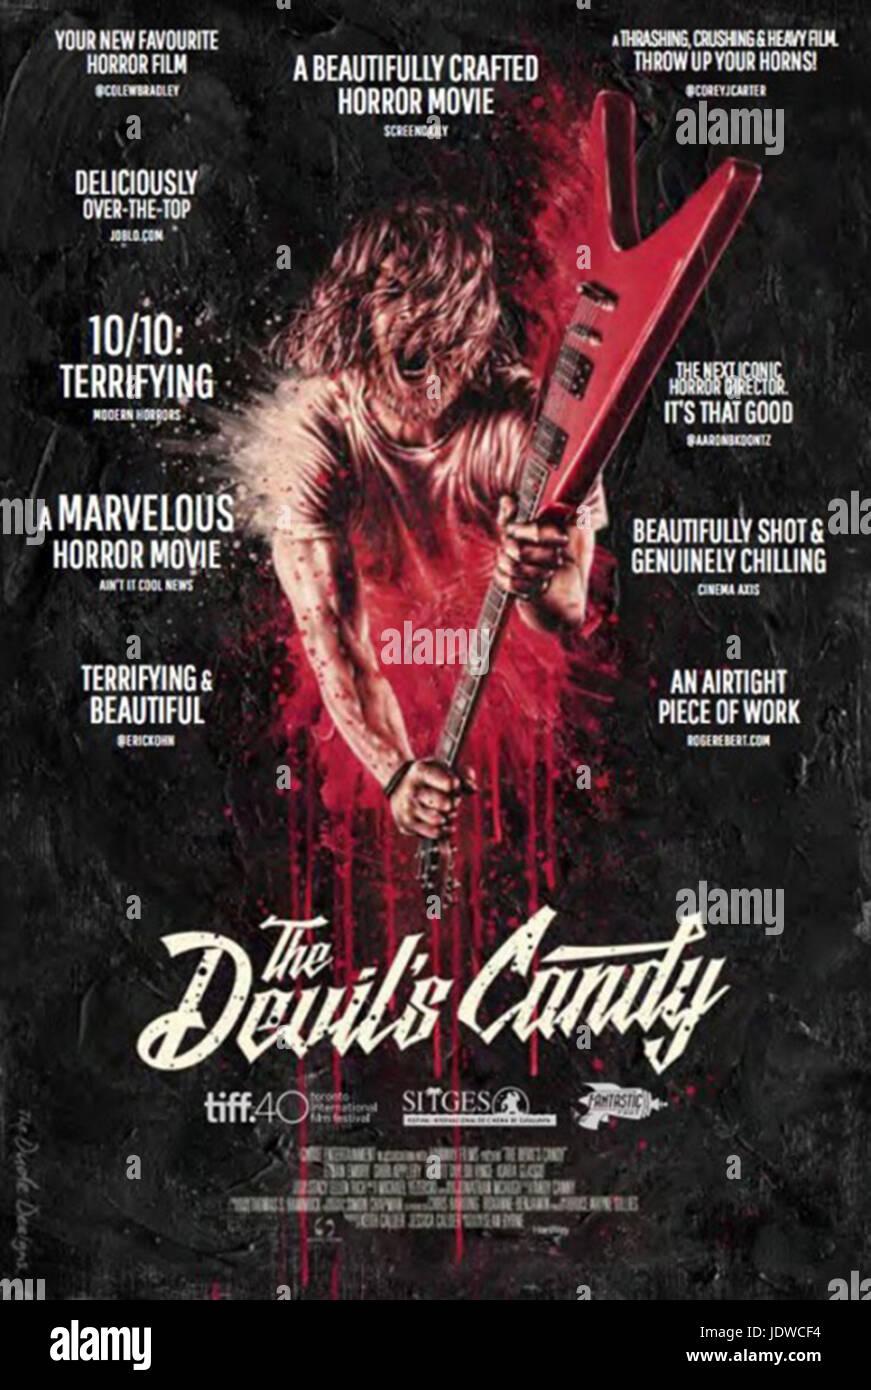 Le DEVIL'S CANDY (2015) SEAN BYRNE (DIR) SNOOT ENTERTAINMENT/COLLECTION MOVIESTORE LTD Photo Stock